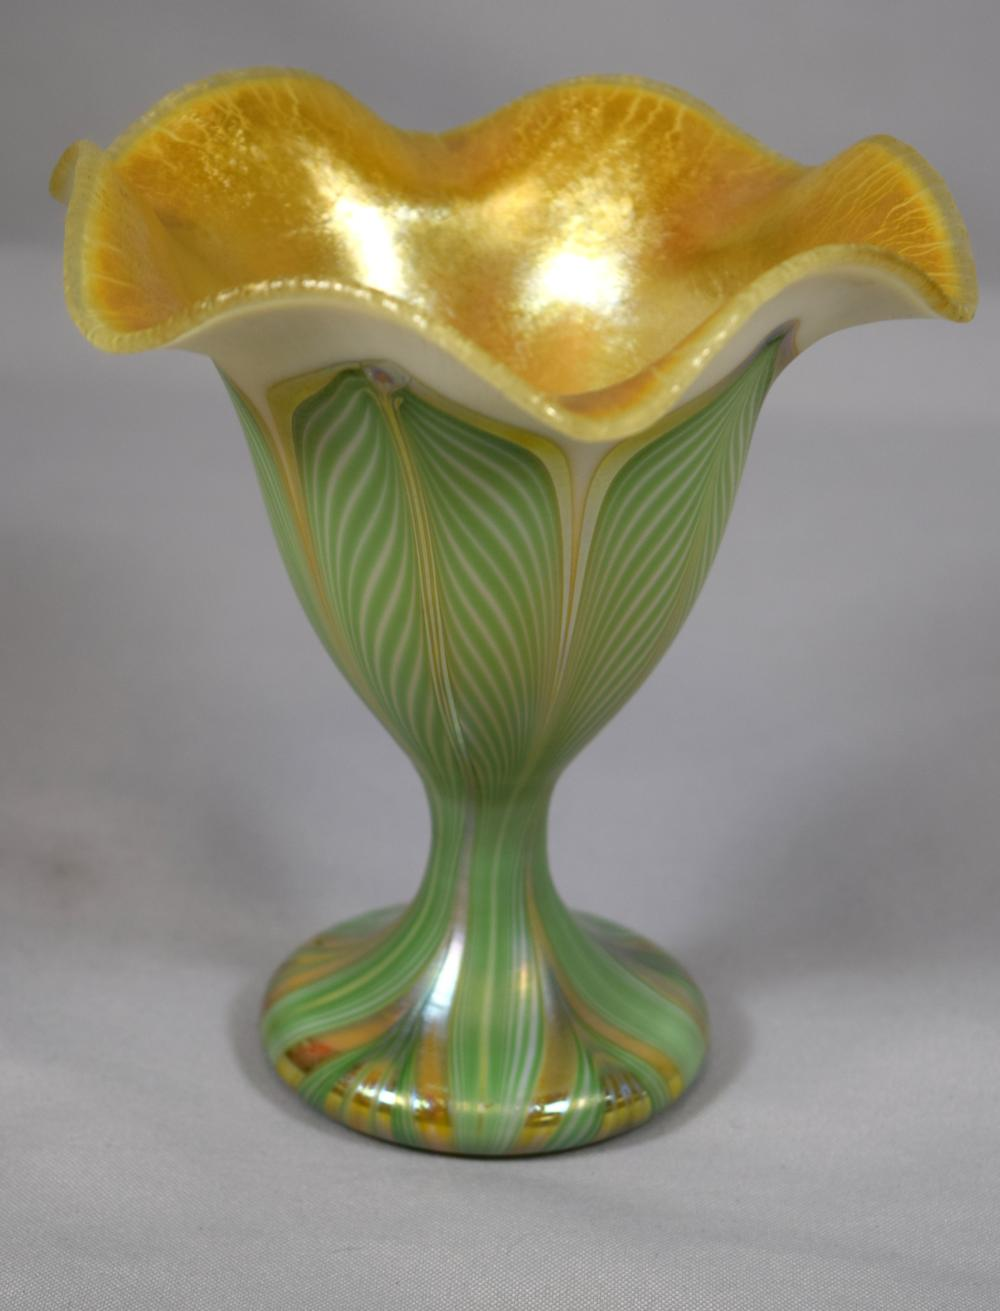 QUEZEL IRIDESCENT GOLD & PULLED FEATHER VASE: